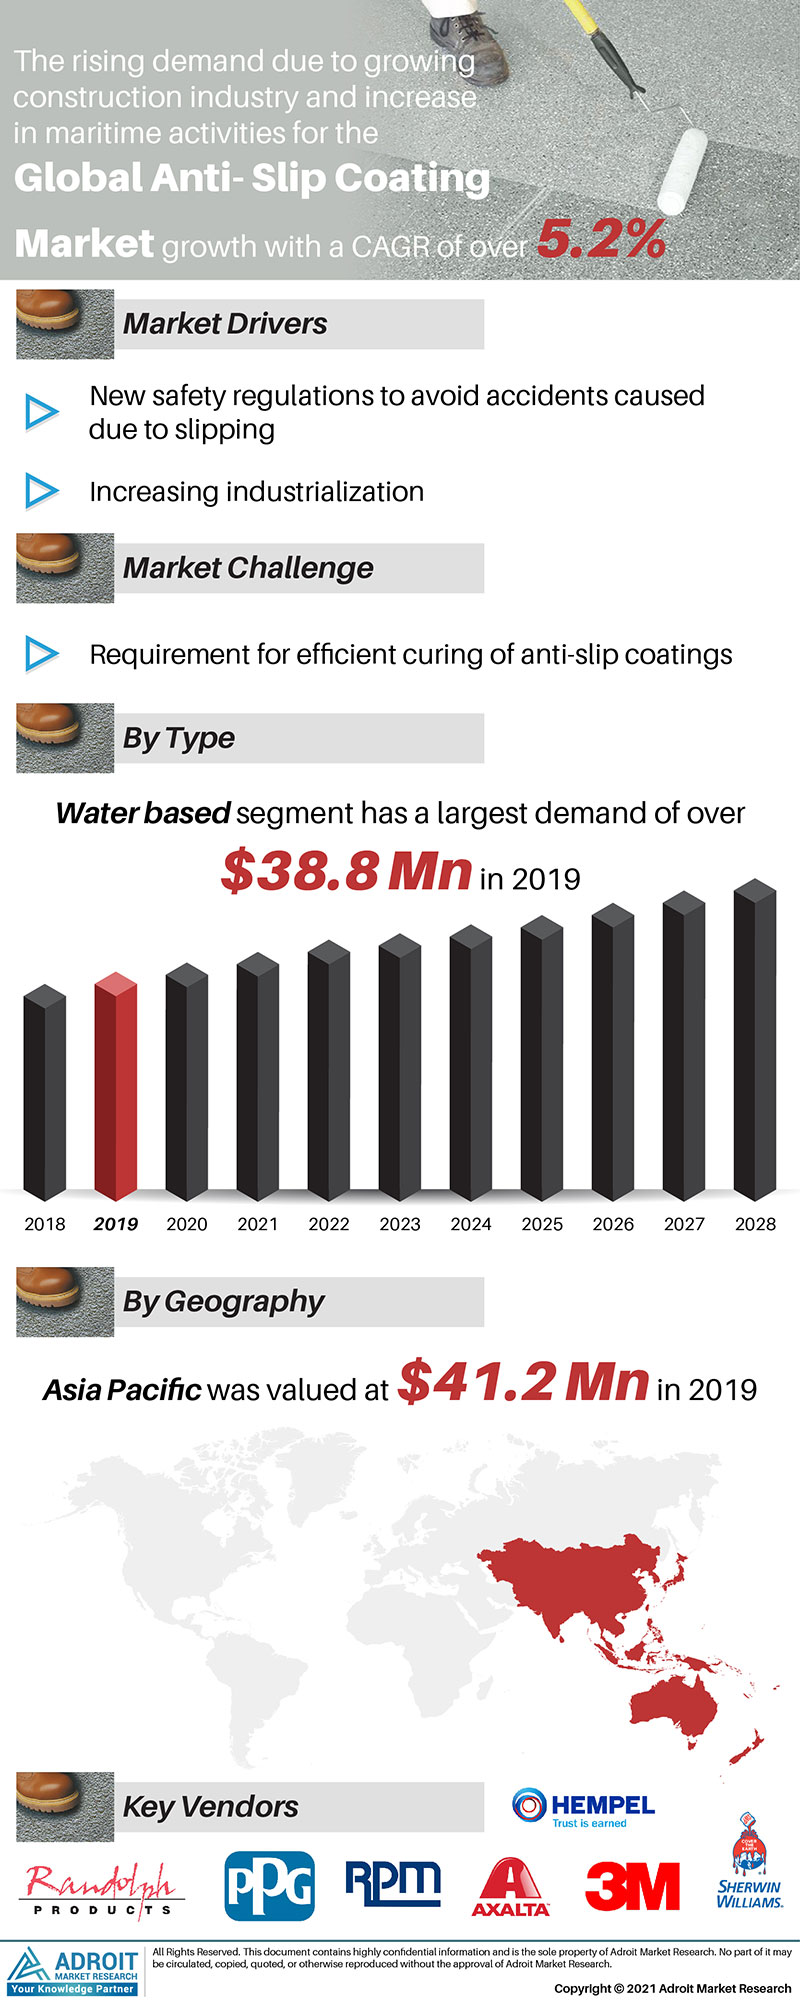 Anti-Slip Coating Market Trends and Forecasts Research Report